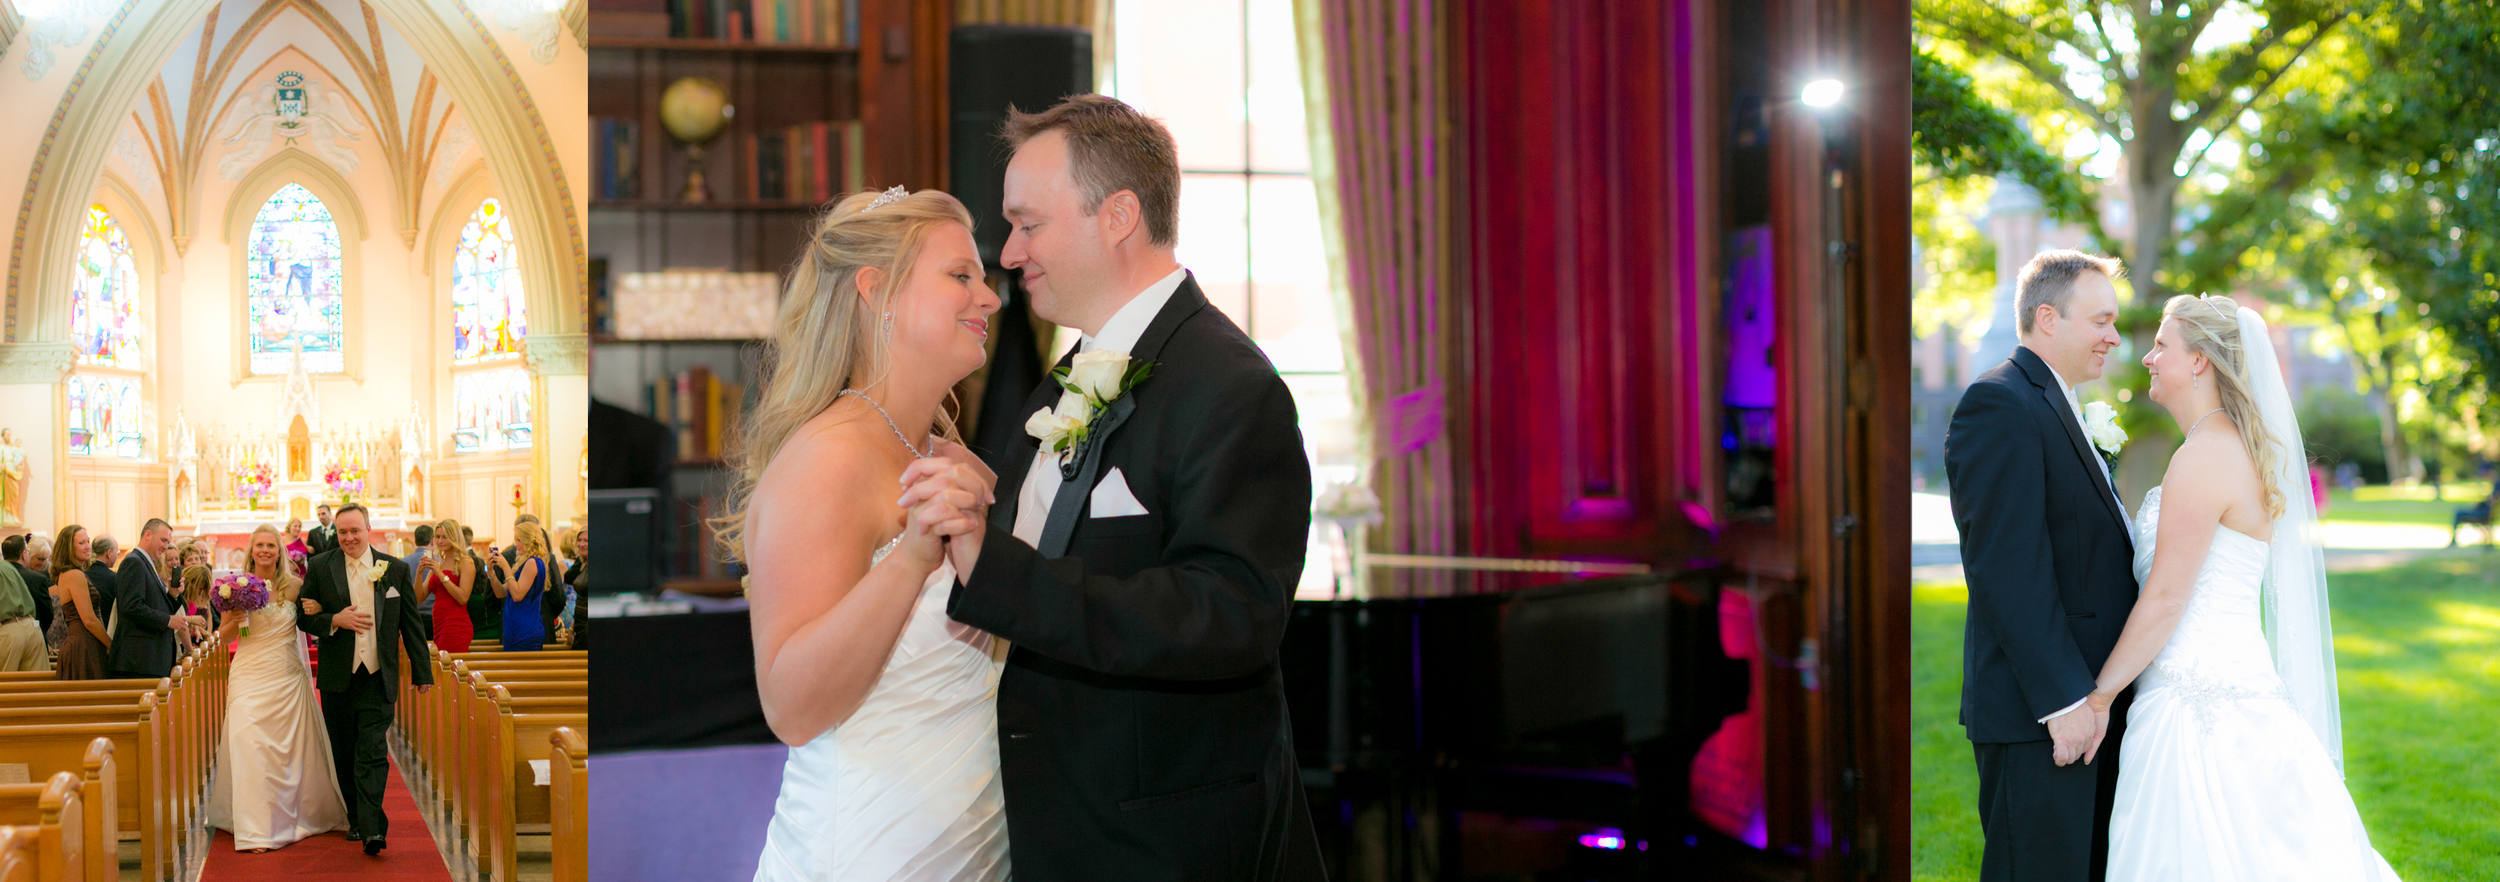 Alison & Jeff - August 2014 at the Hampshire House